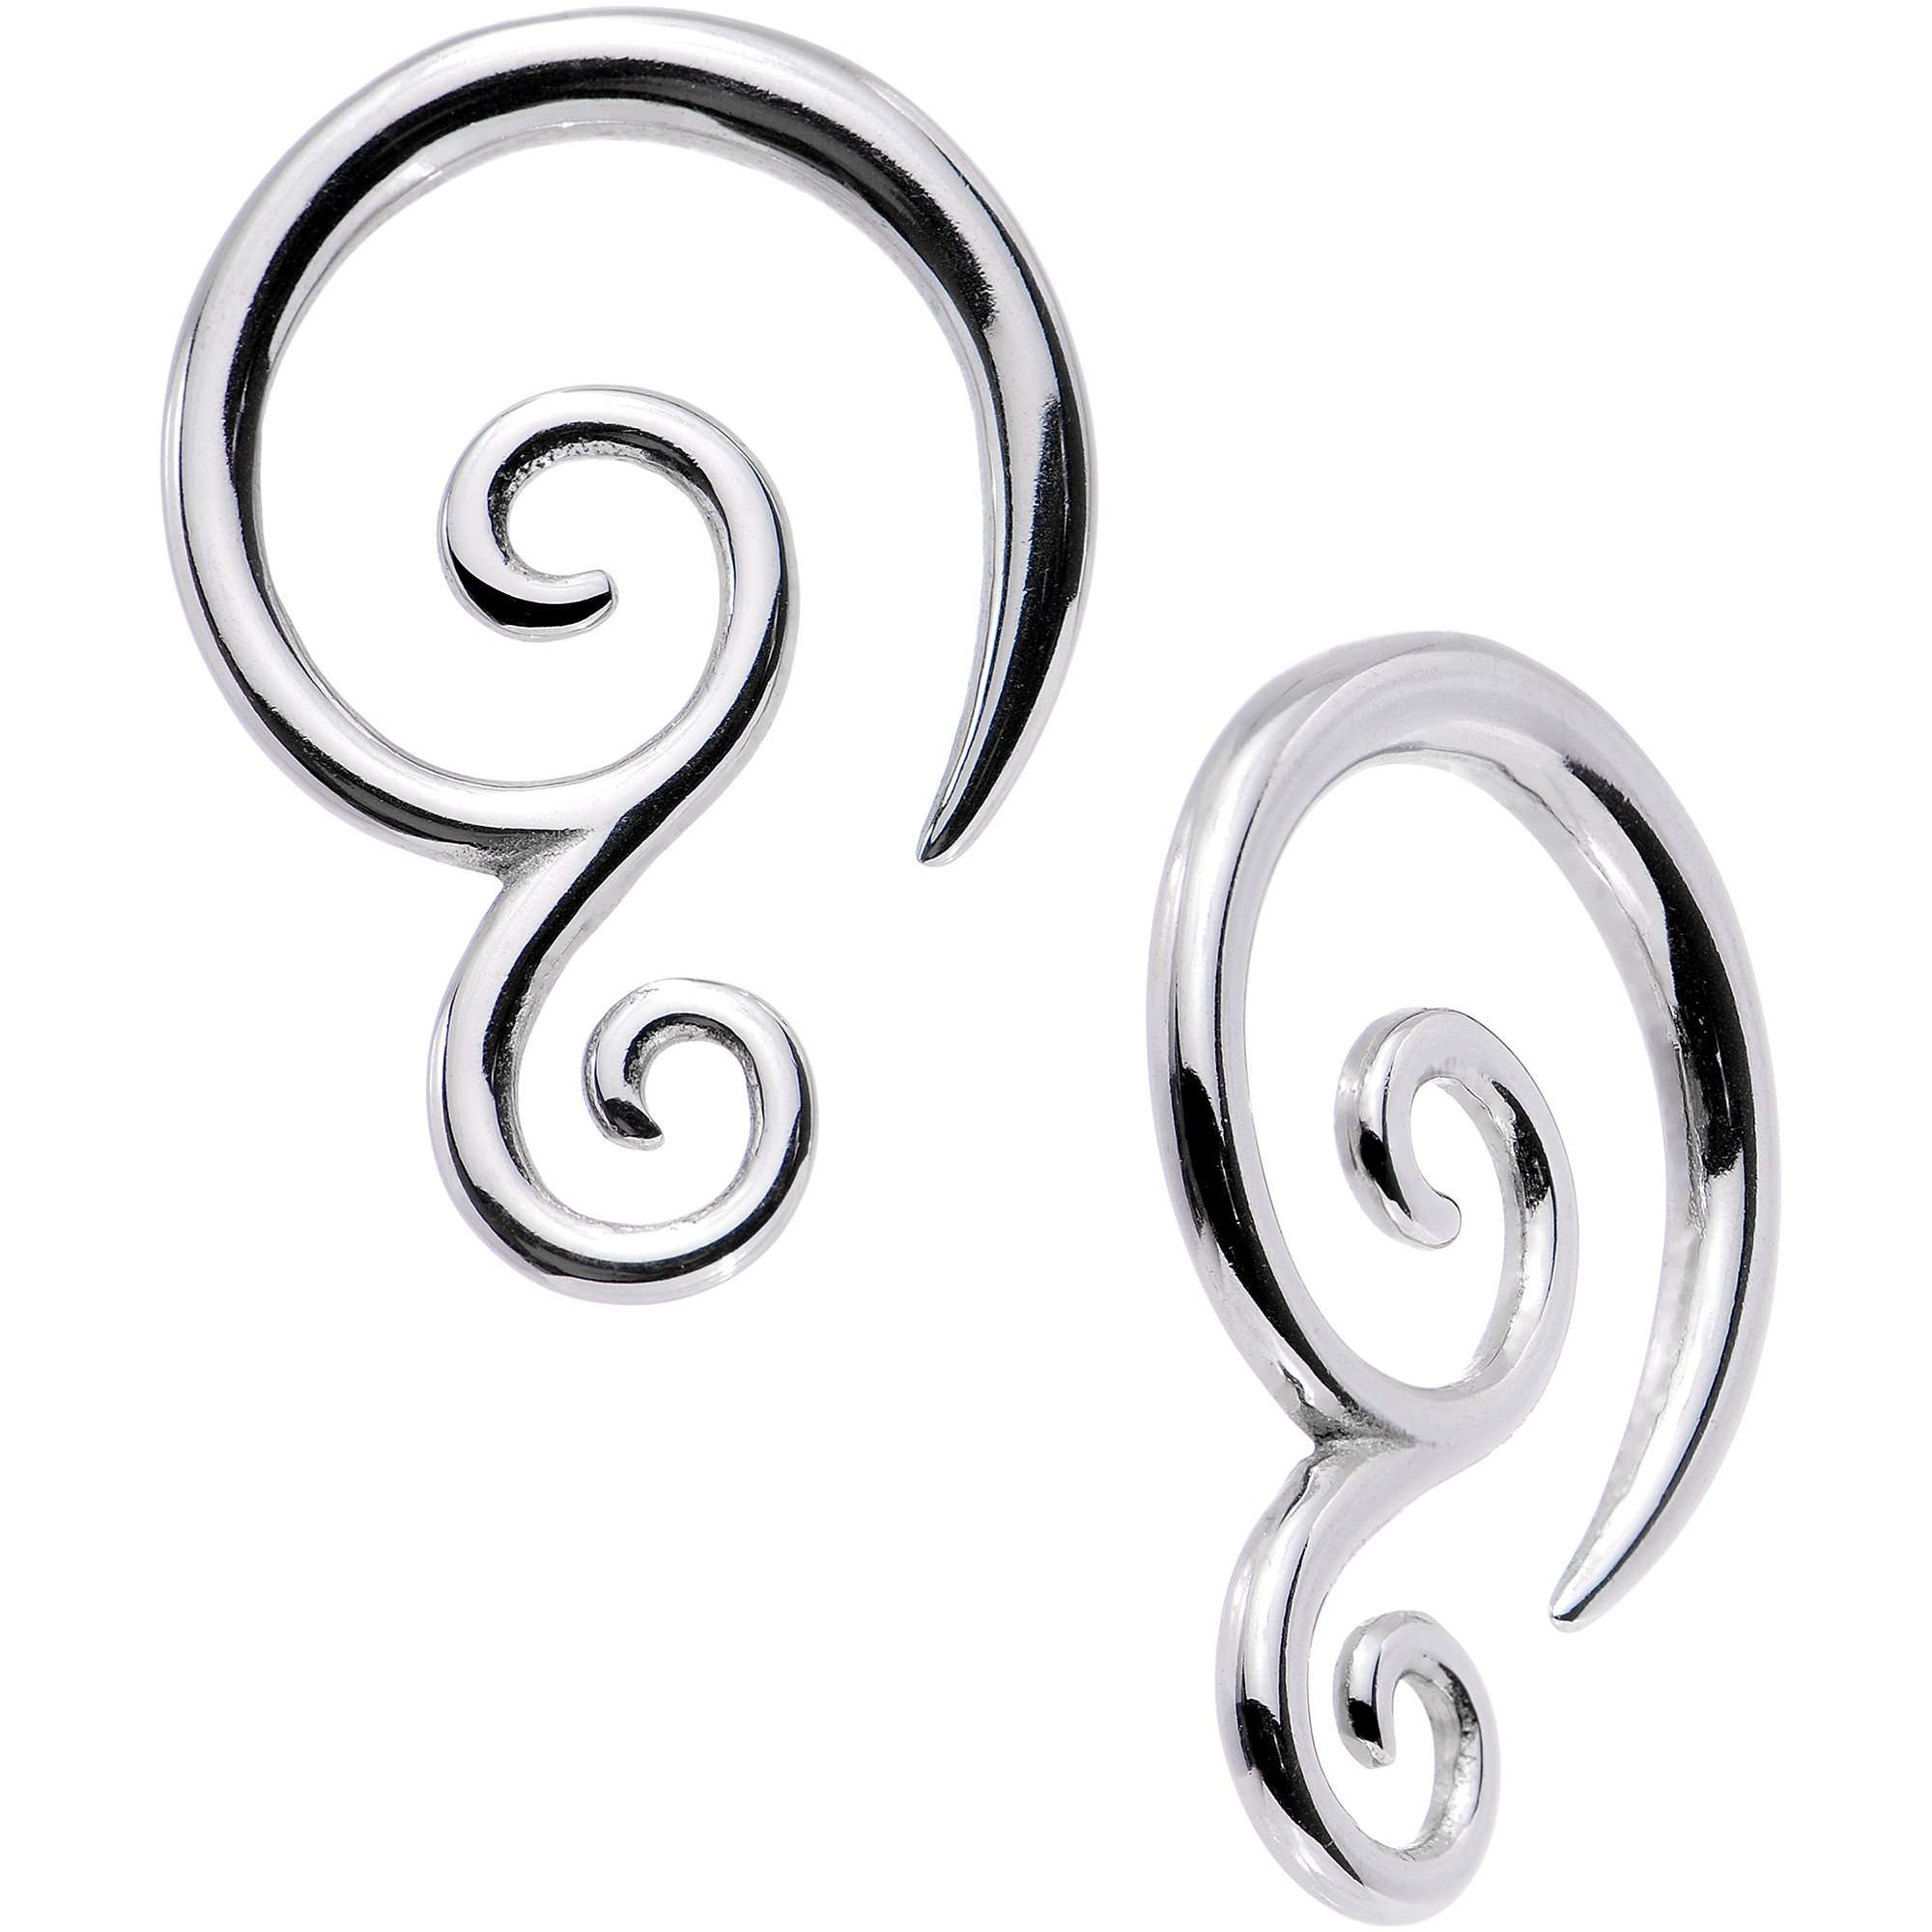 Body Candy Stainless Steel Double Swirl Spiral Taper Set of 2 10 Gauge